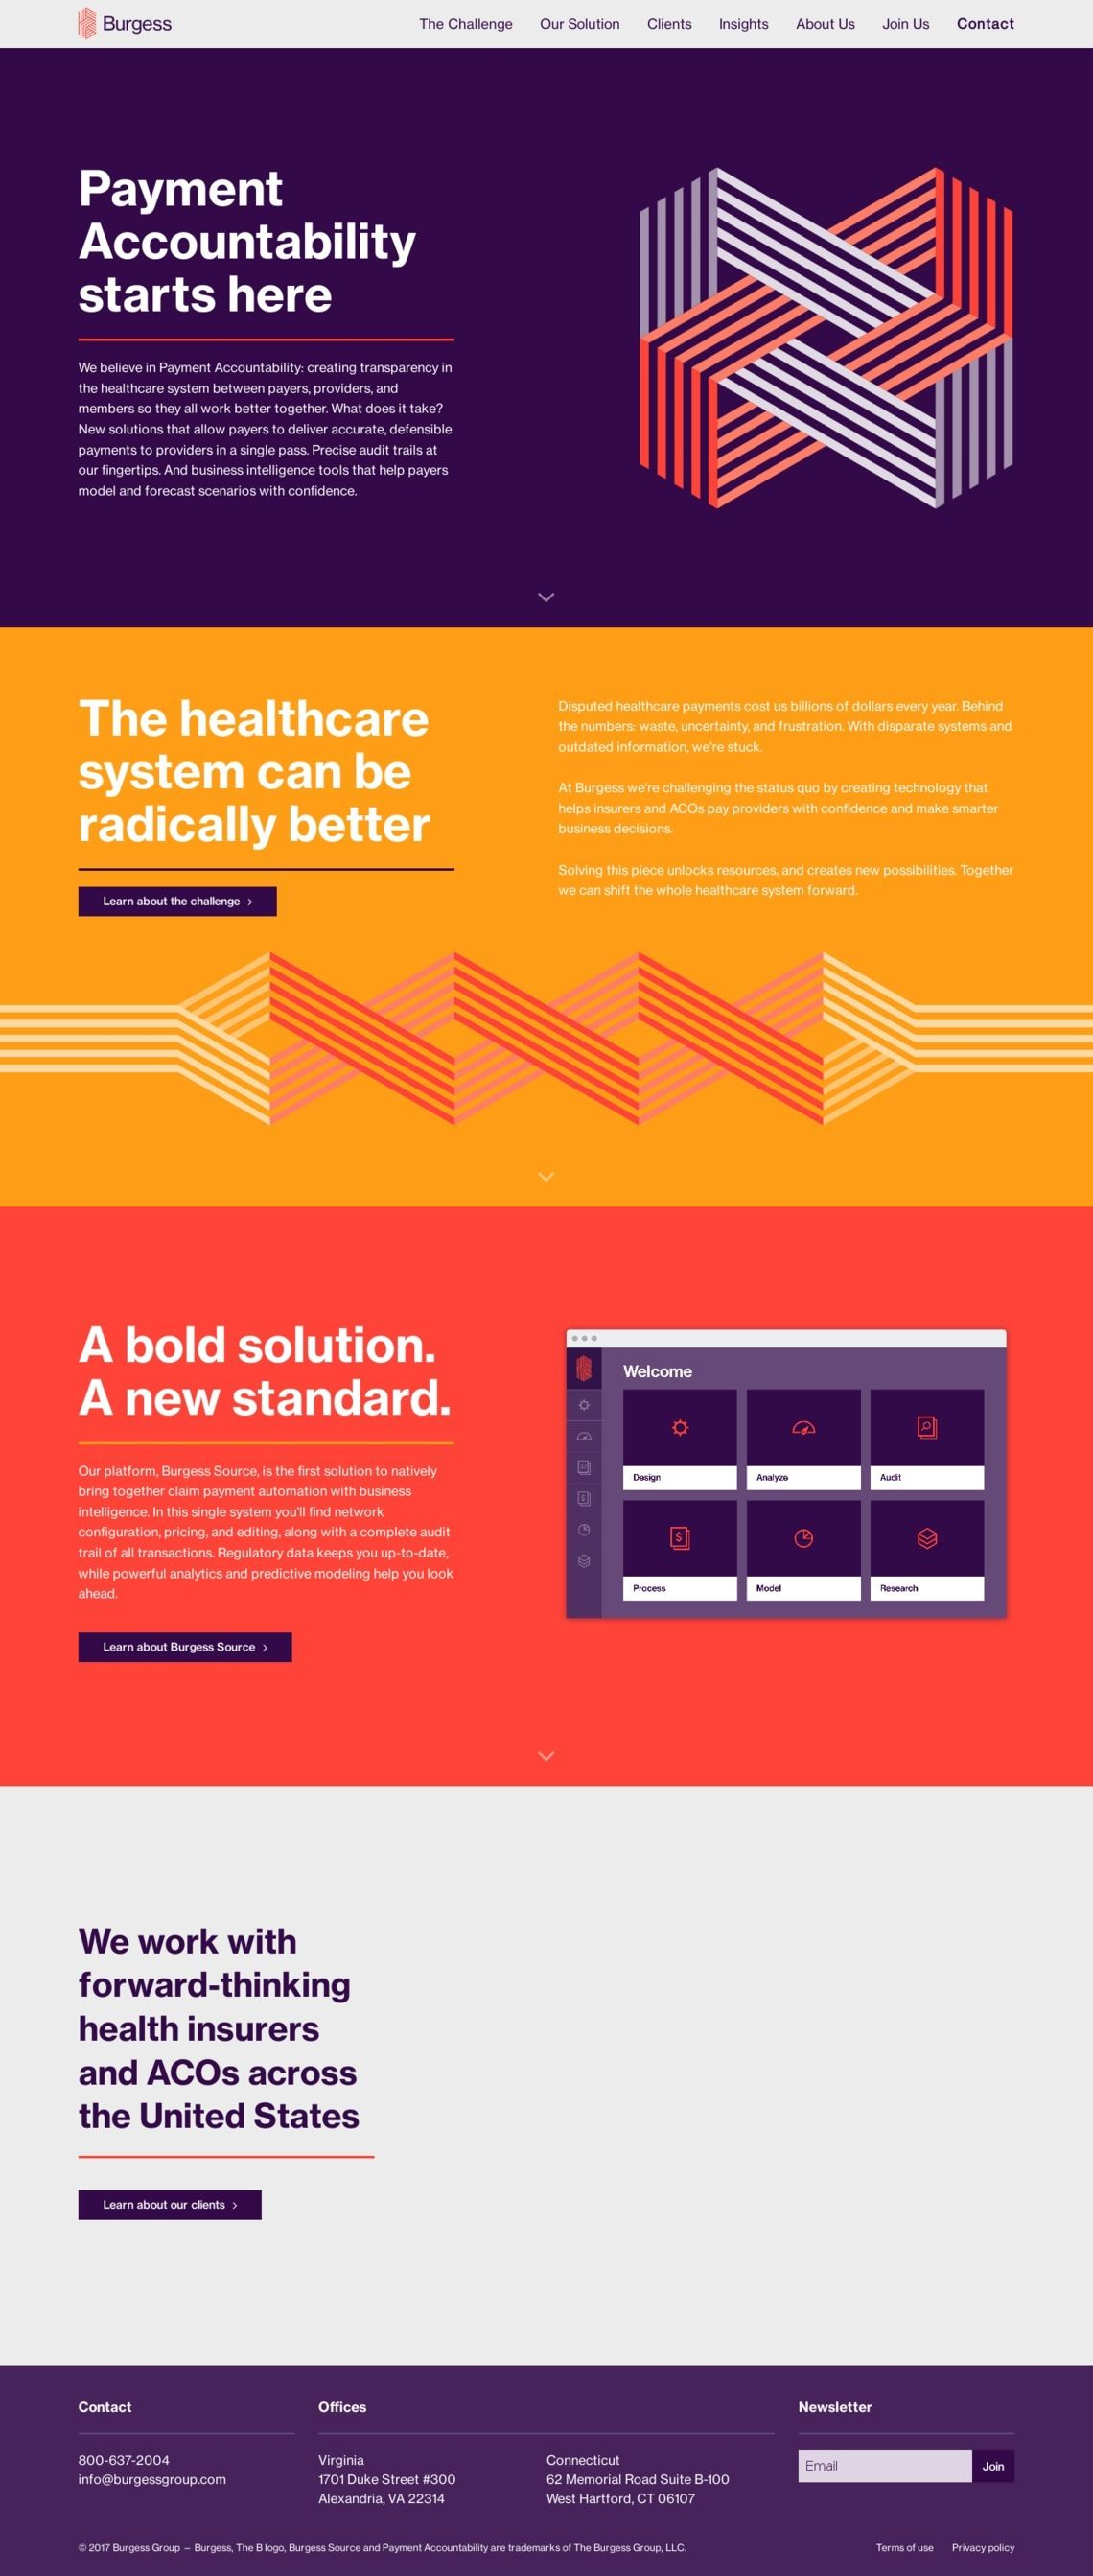 Landing Page Example Burgessgroup Com Best Landing Pages Learn Ux Design Landing Page Inspiration